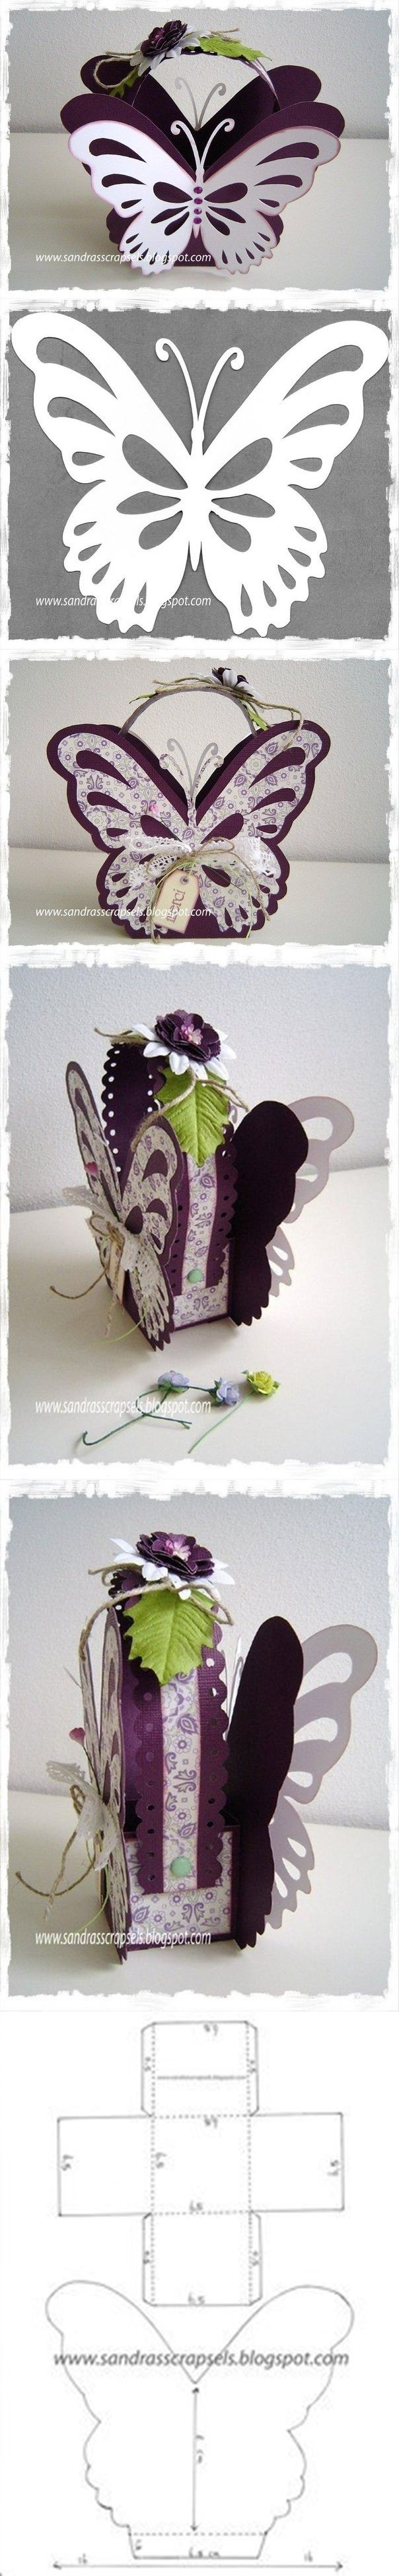 ♔ BUTTERFLY GIFT BASKET BOX, #CRICUT, #CRICUTEXPLORE